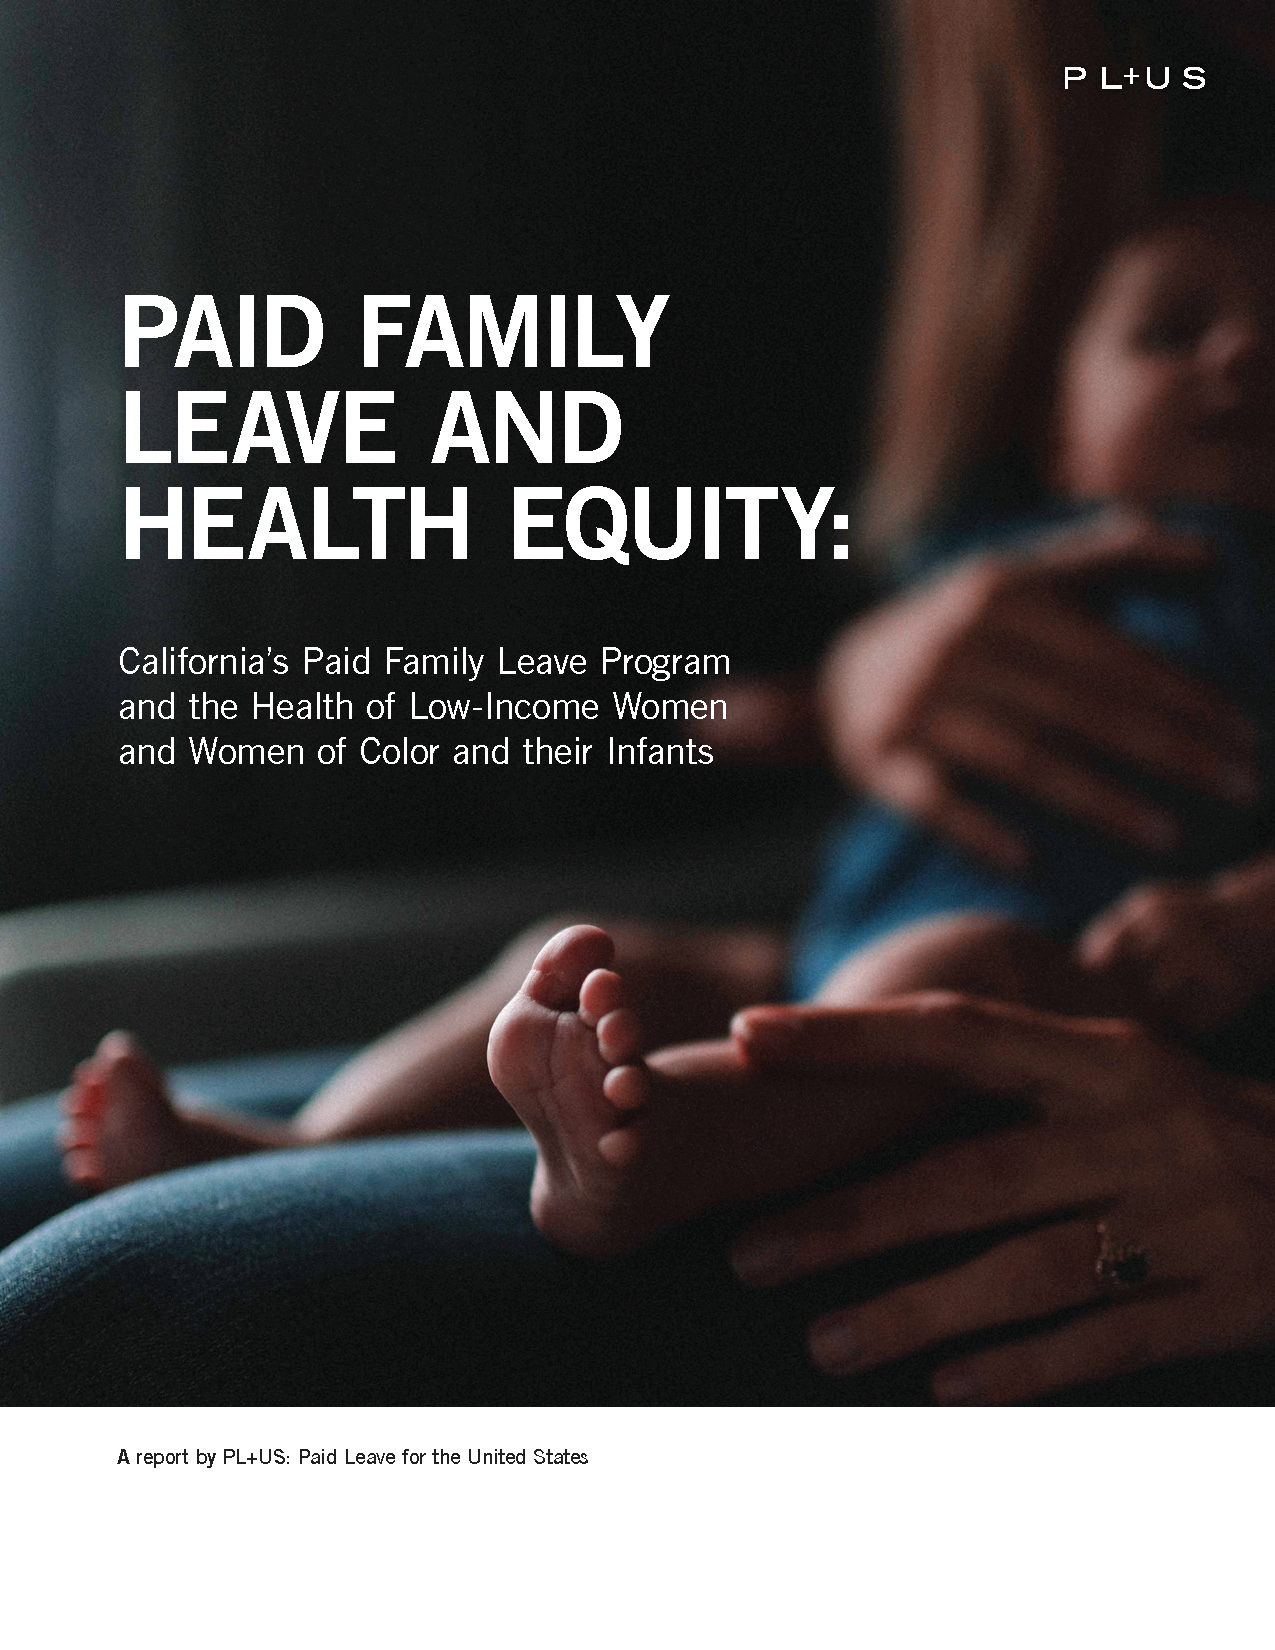 Paid Family Leave and Health Equity: California's Paid Family Leave Program and the Health of Low-Income Women and Women of Color and their Infants - This new report analyzes how California's paid family leave policy is out of reach for some Californians, and how California's leaders can support the health and wellbeing of communities of color and low-income communities.